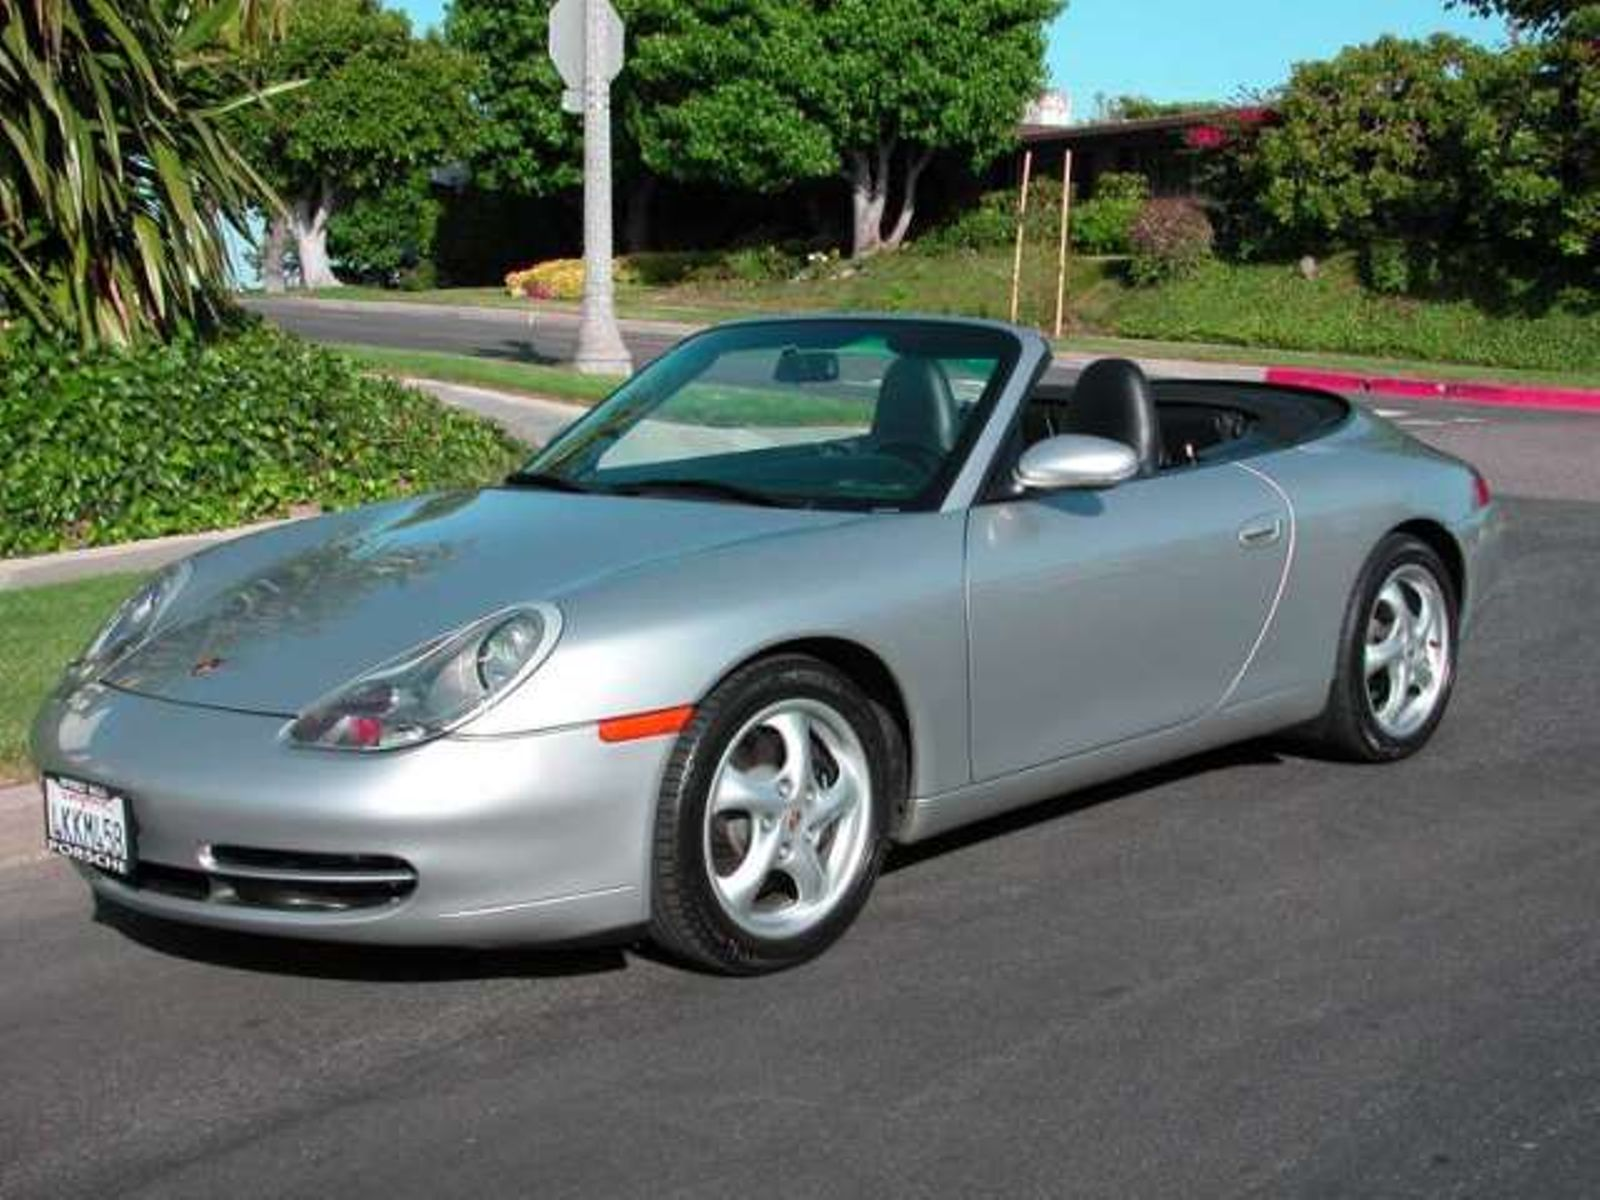 2000 Porsche 911 Carrera Convertible One Owner California Car City Auto Fitness Cl Benz In